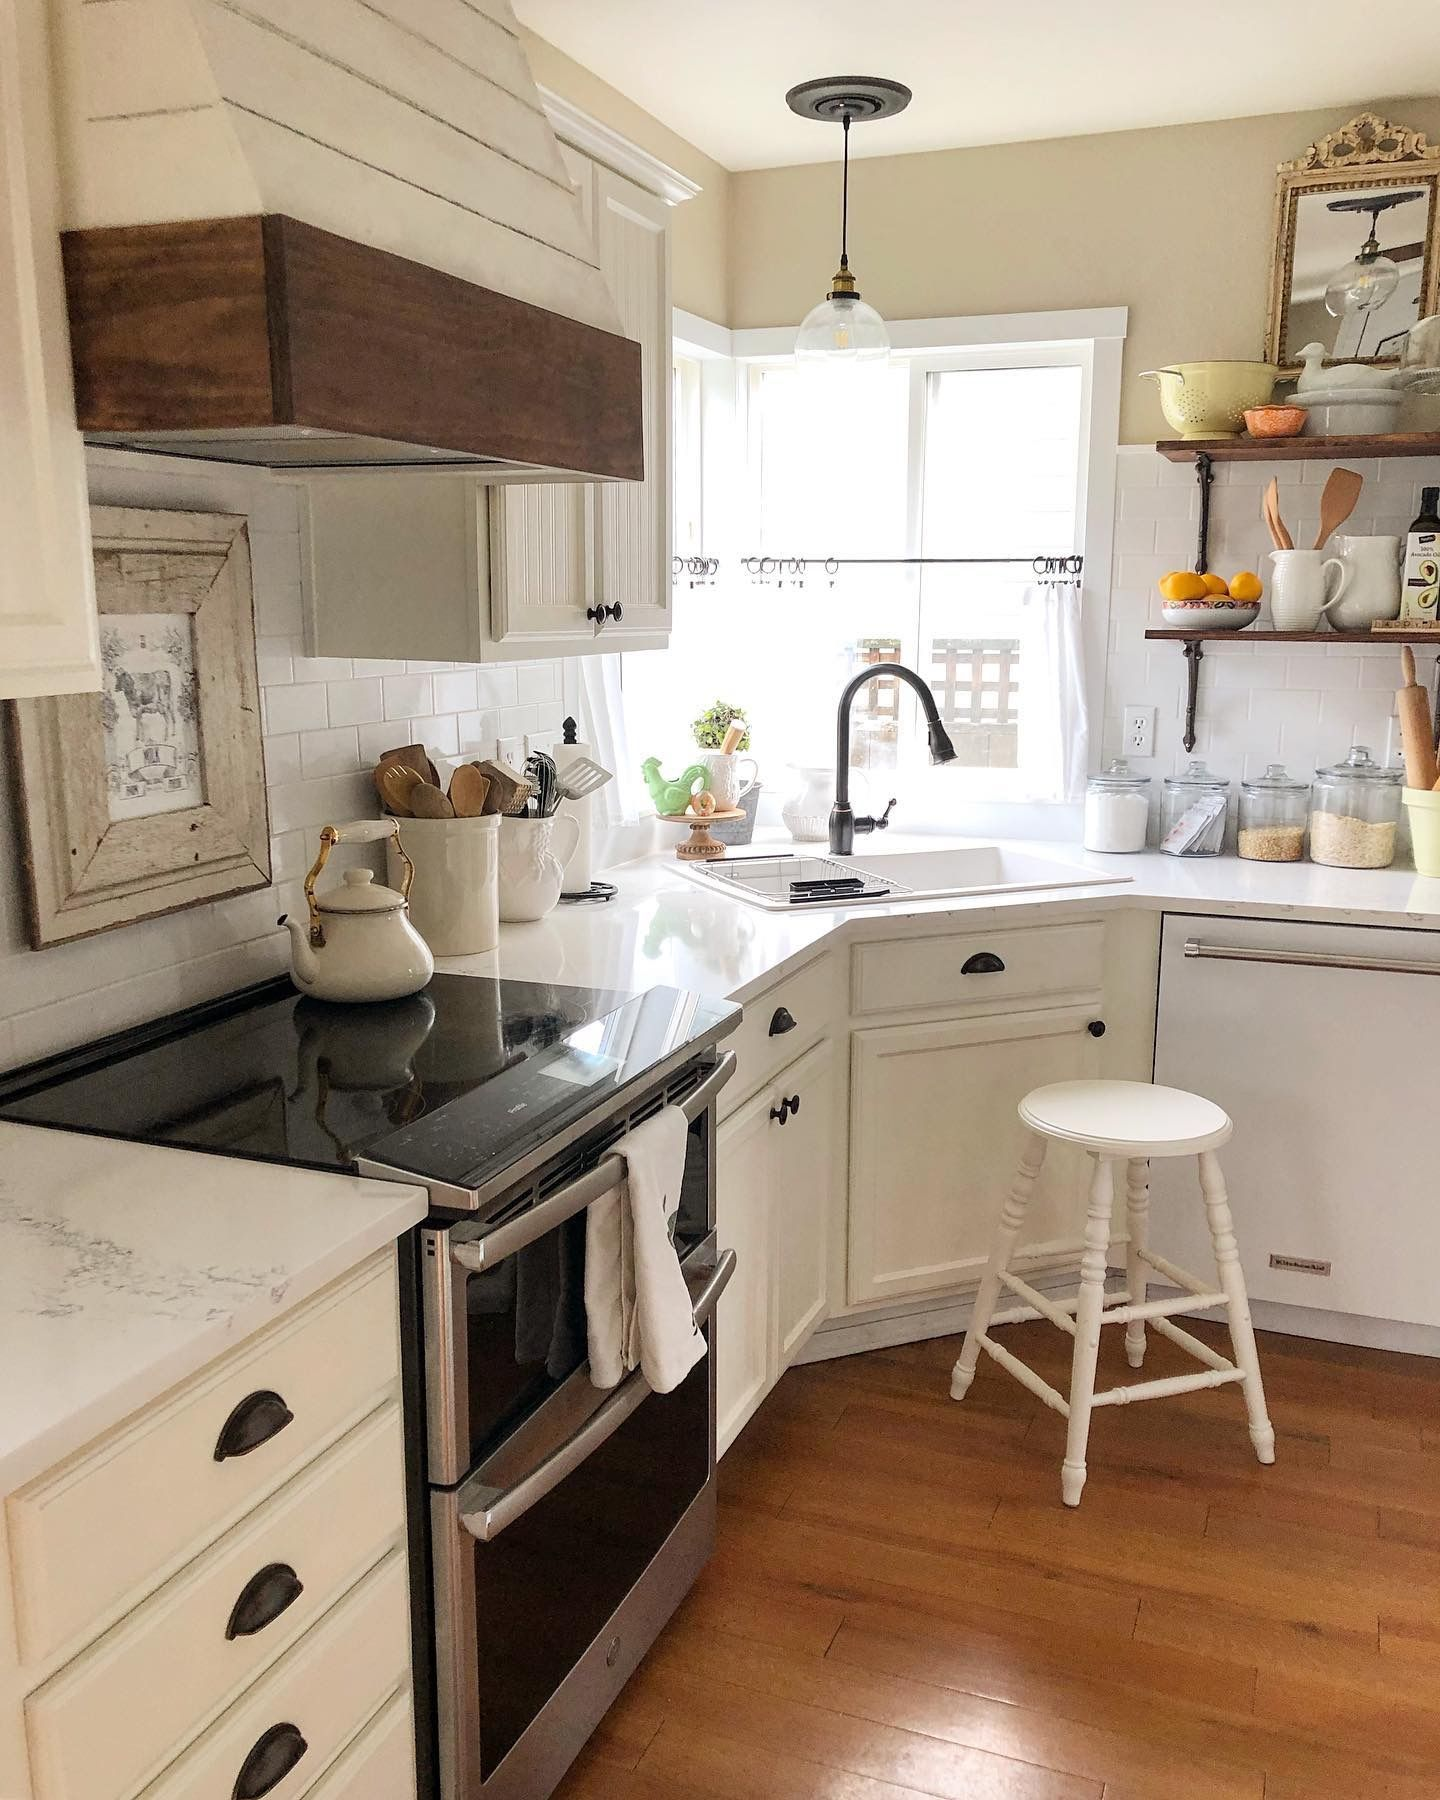 Pin by Michele Sorbo Grant on Kitchens & More Kitchens ...